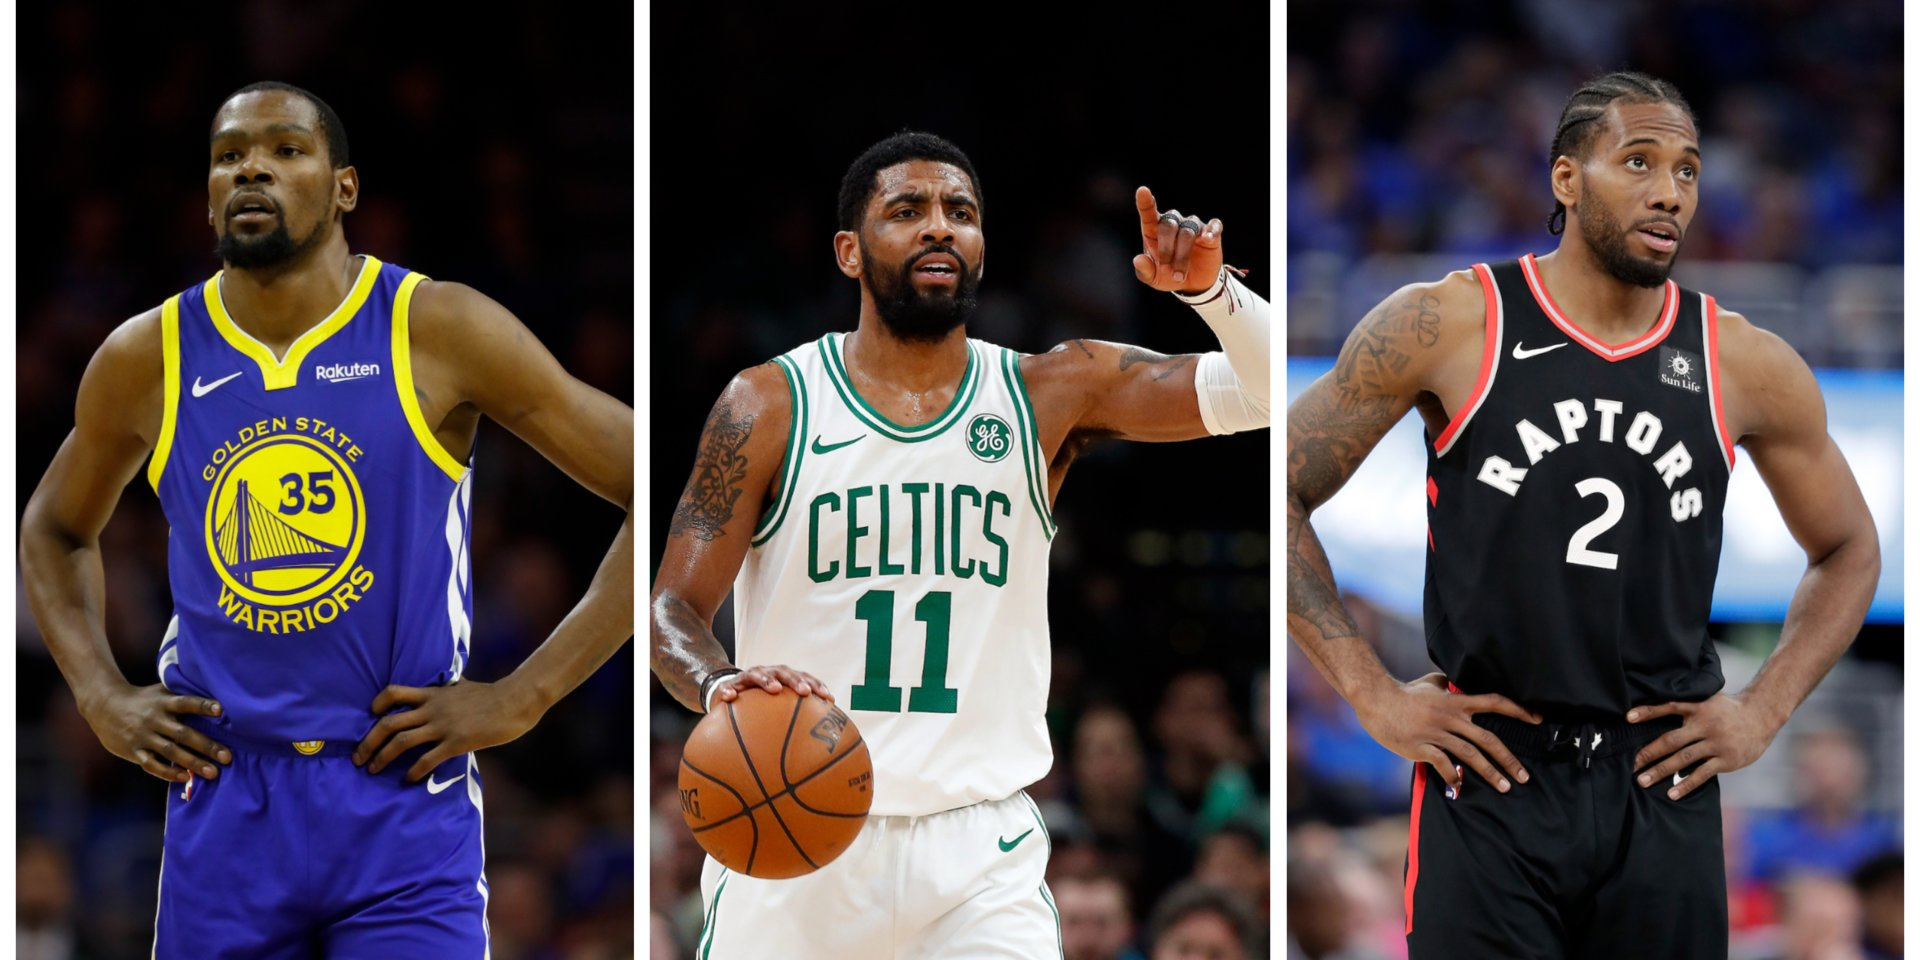 IMAGE: Matt Slocum/AP; Winslow Townson/AP; John Raoux;AP - Left to Right: Kevin Durant, Kyrie Irving, Kawhi Leonard; three of the top free agents in 2019.